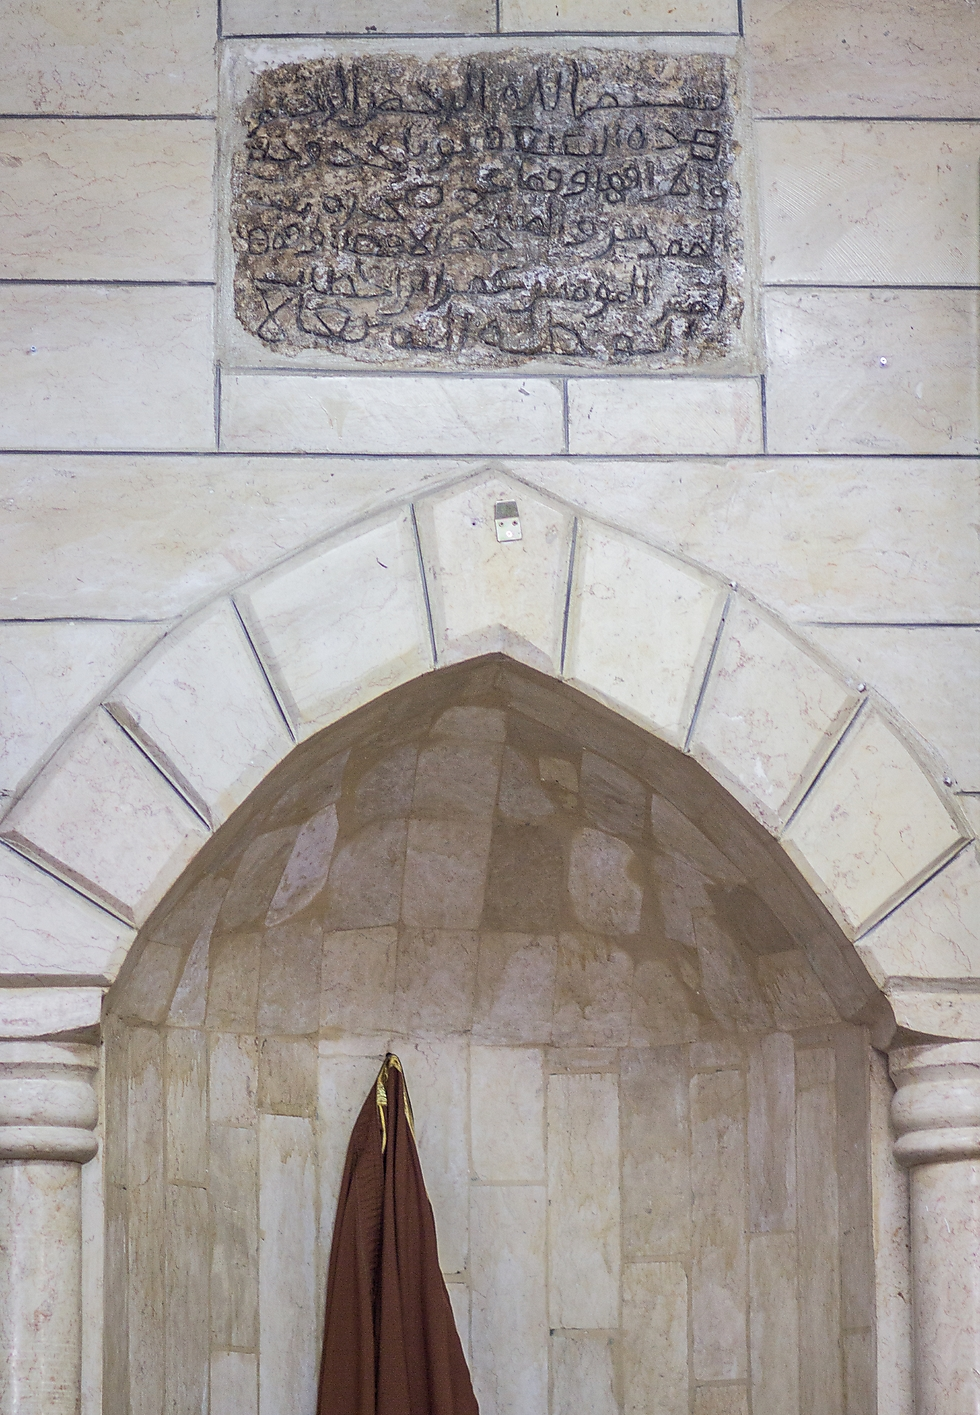 Inscription discovered in the mosque: Photo: Assaf Avraham